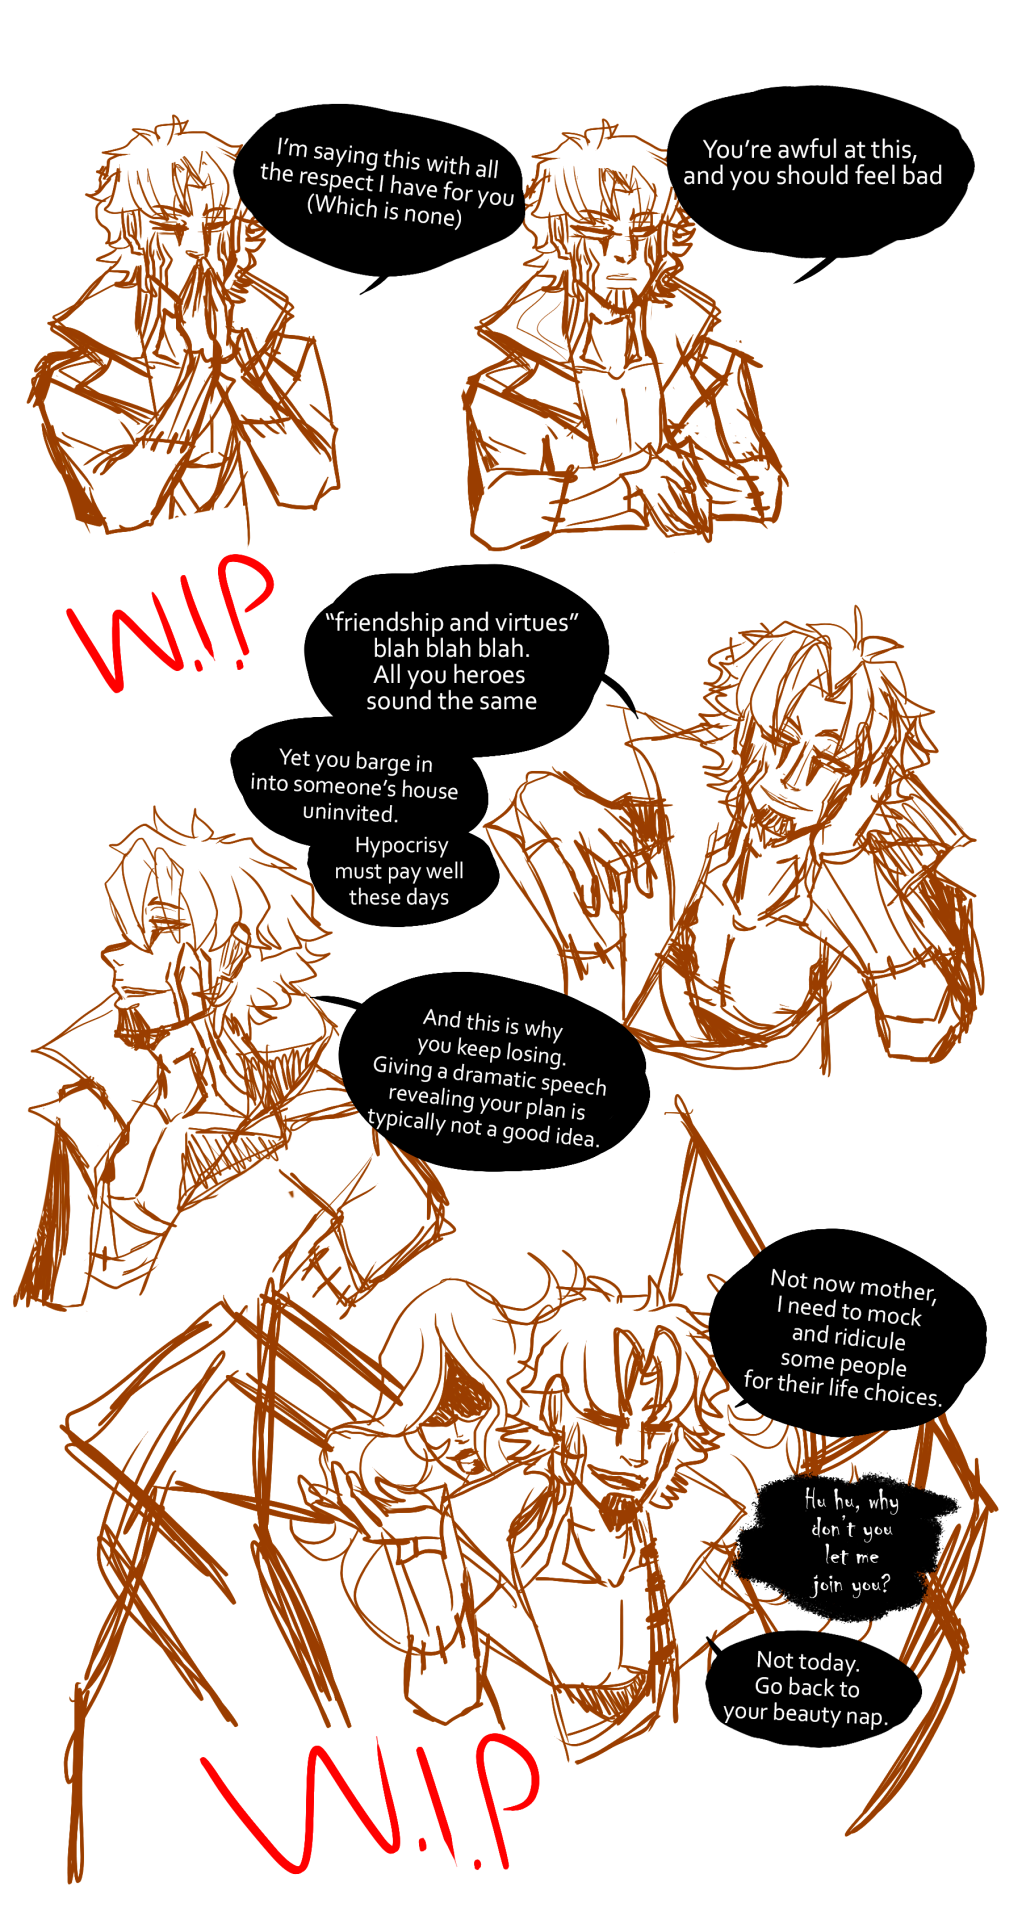 Doodled Jurou again, this time showcasing some of his sass. I'm not gonna finish this today, but wanted to share this WIPThe first panel is something he either says if someone is doing particularly bad hero-ing, or parenting. (he is a villain/antagonist, but has high standards for parenting given he is technically one himself and will absolutely maul an abusive parent and feed them to his mother's spirit)Second one is him getting a lil tired of the good guys all repeating themselves like a broken record. And barging into his house uninvited, how rudeThird is him roasting fellow villains for doing the most obvious stupid thing that typically leads to their loss.Fourth is Jurou and his mother having a brief conversation in-between him sassing someone out #lumis chaotic creations  #my wip art #Jurou Hasegawa#Araknos#my oc #my oc art #sketch#sketch doodle#comic strip #Work in process  #work in progress #Sassy boi#messy sketch